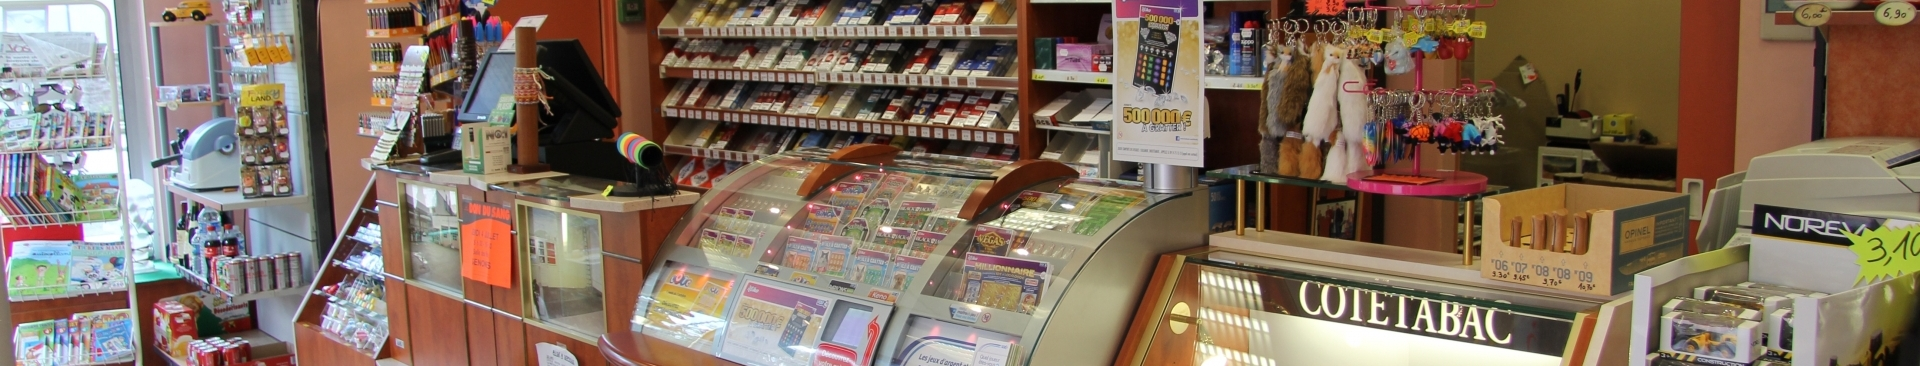 Magasin_20130630_06